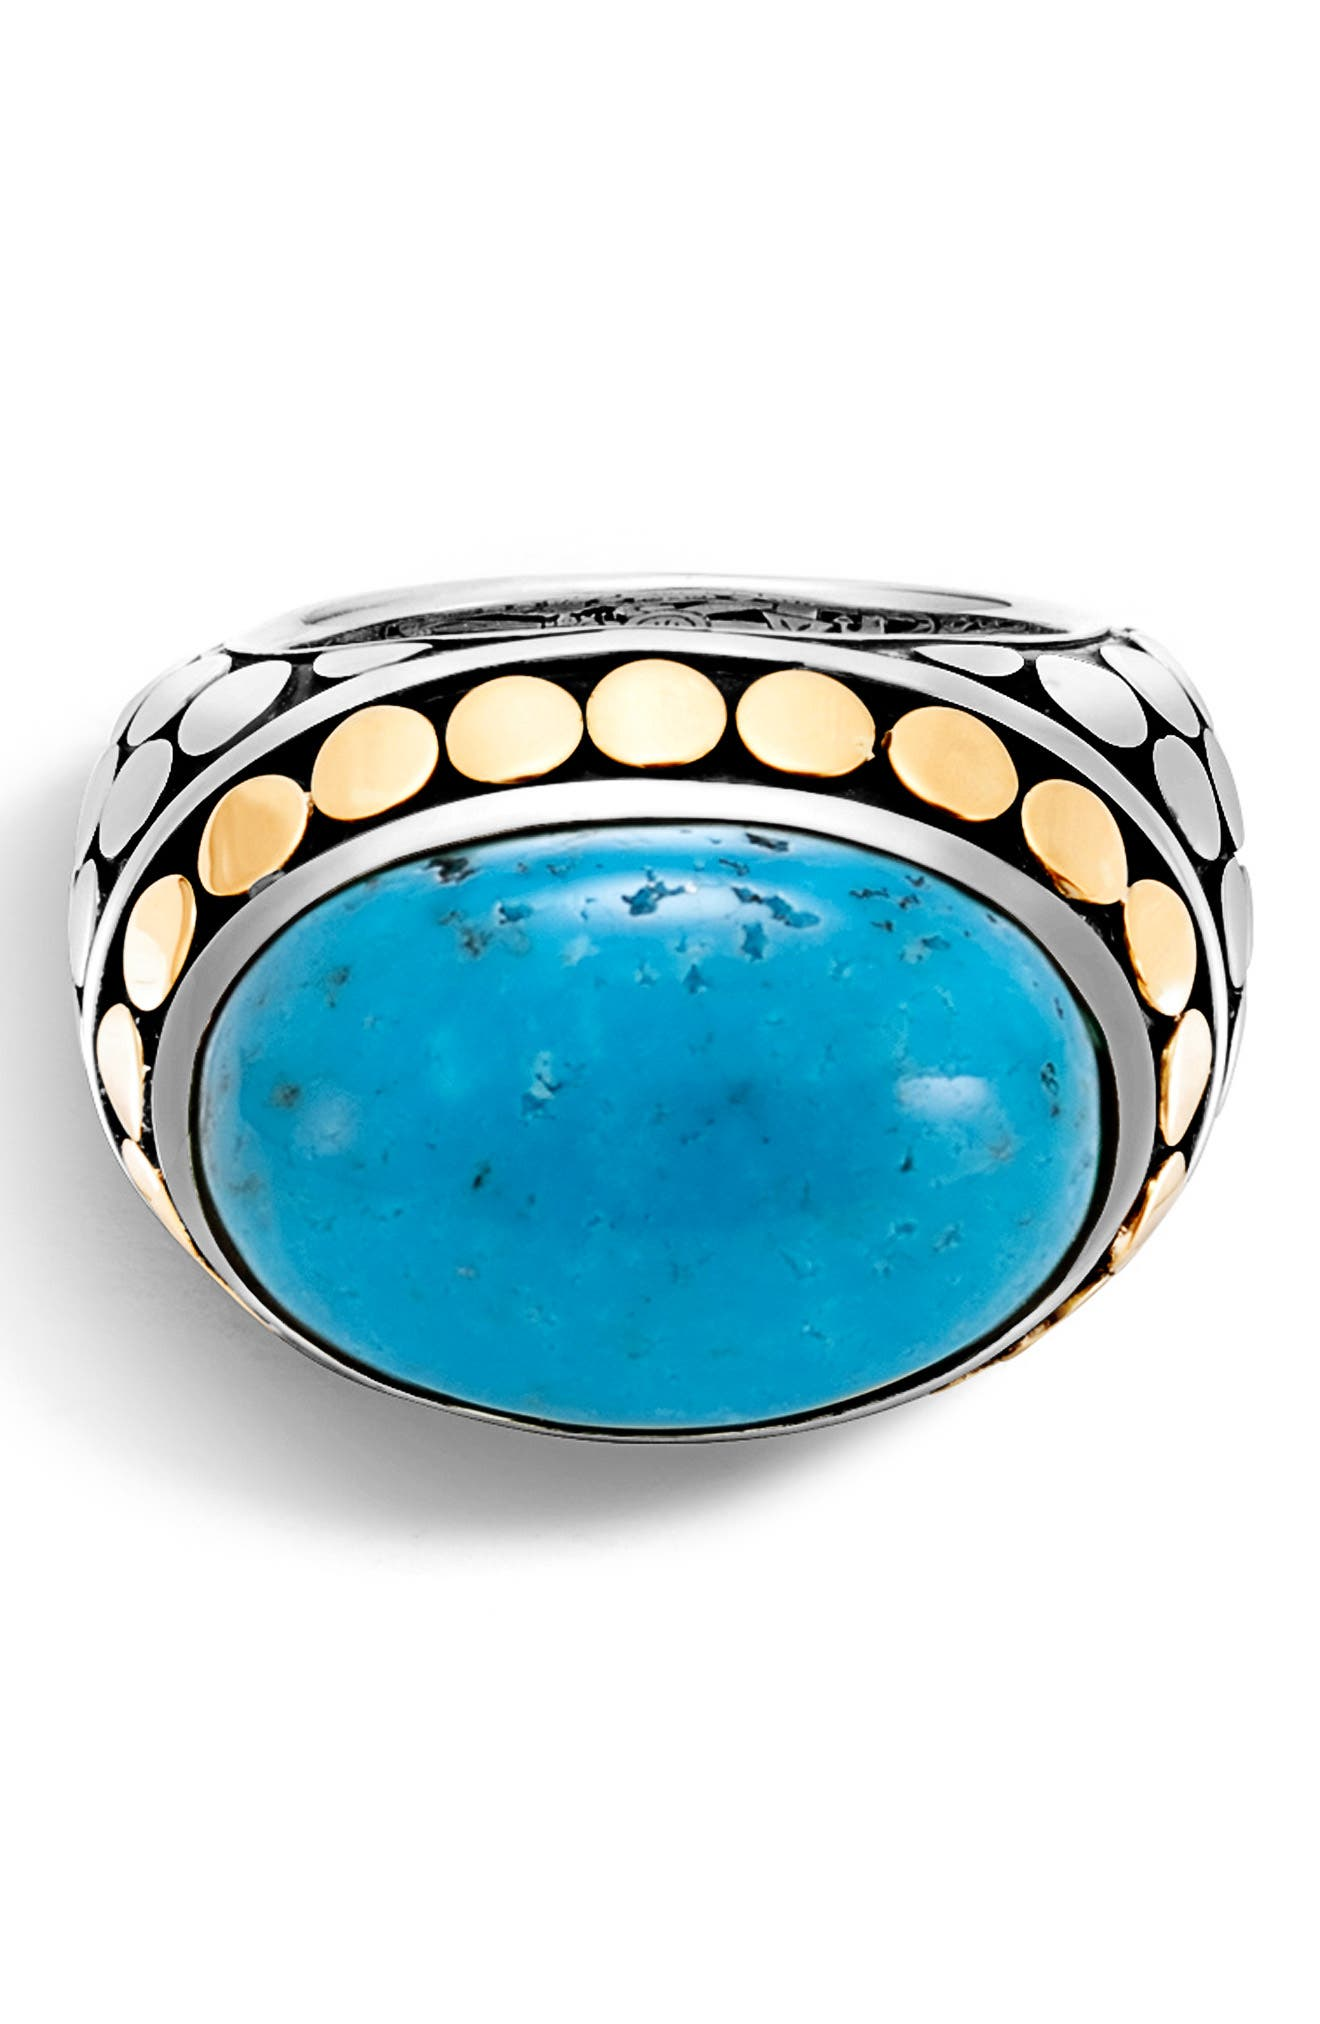 JOHN HARDY,                             Dot Silver & Turquoise Dome Ring,                             Alternate thumbnail 4, color,                             SILVER/ GOLD/ TURQUOISE